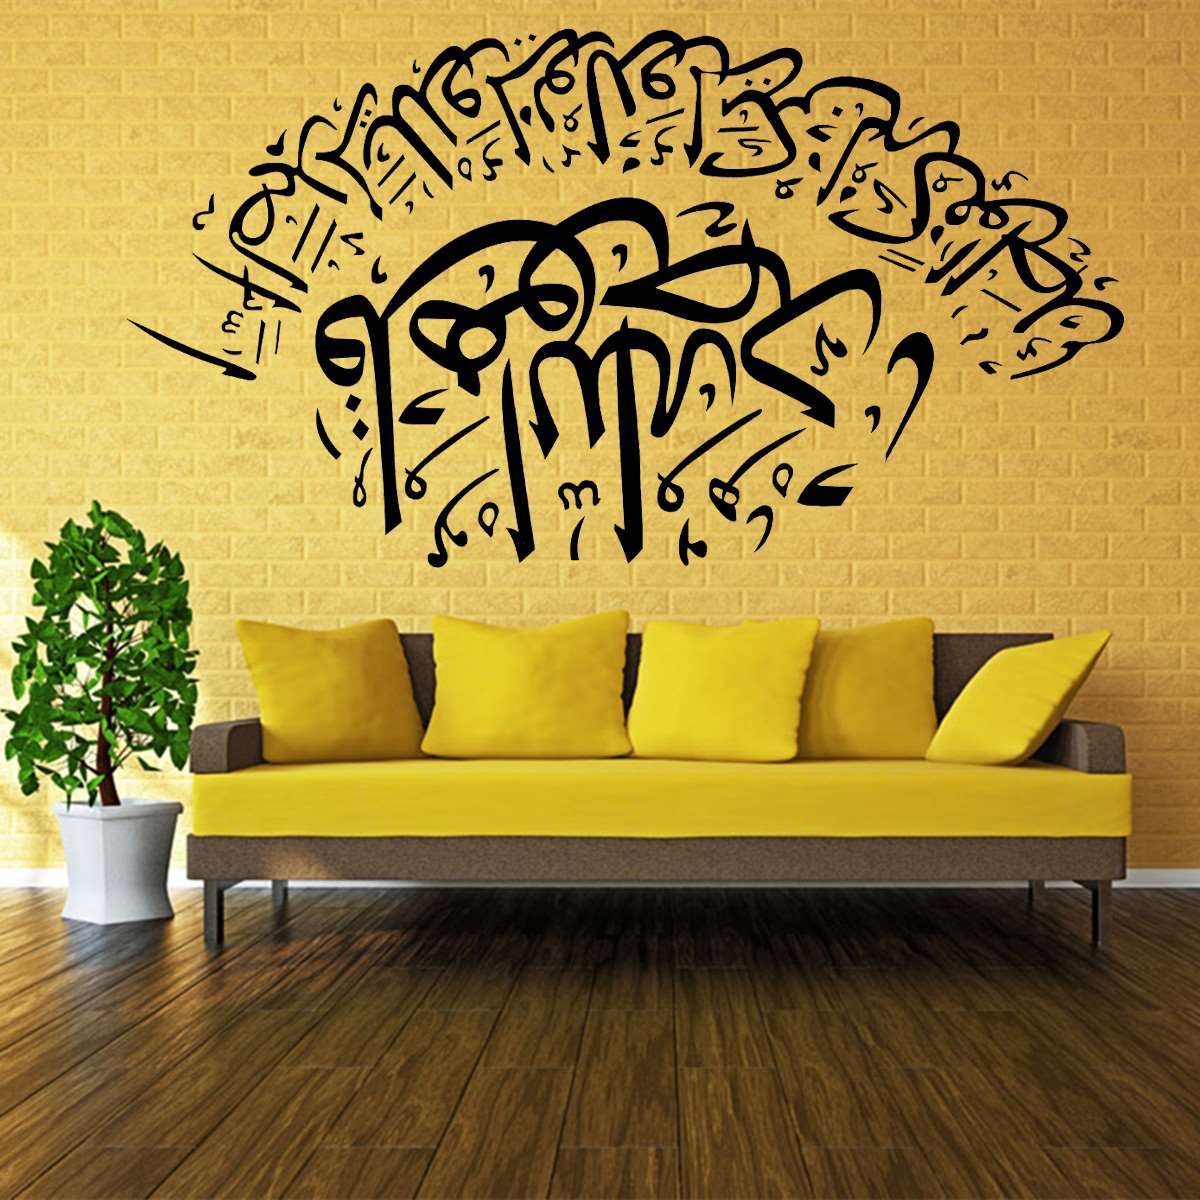 Outstanding Wall Decorating Stickers Pictures - All About Wallart ...